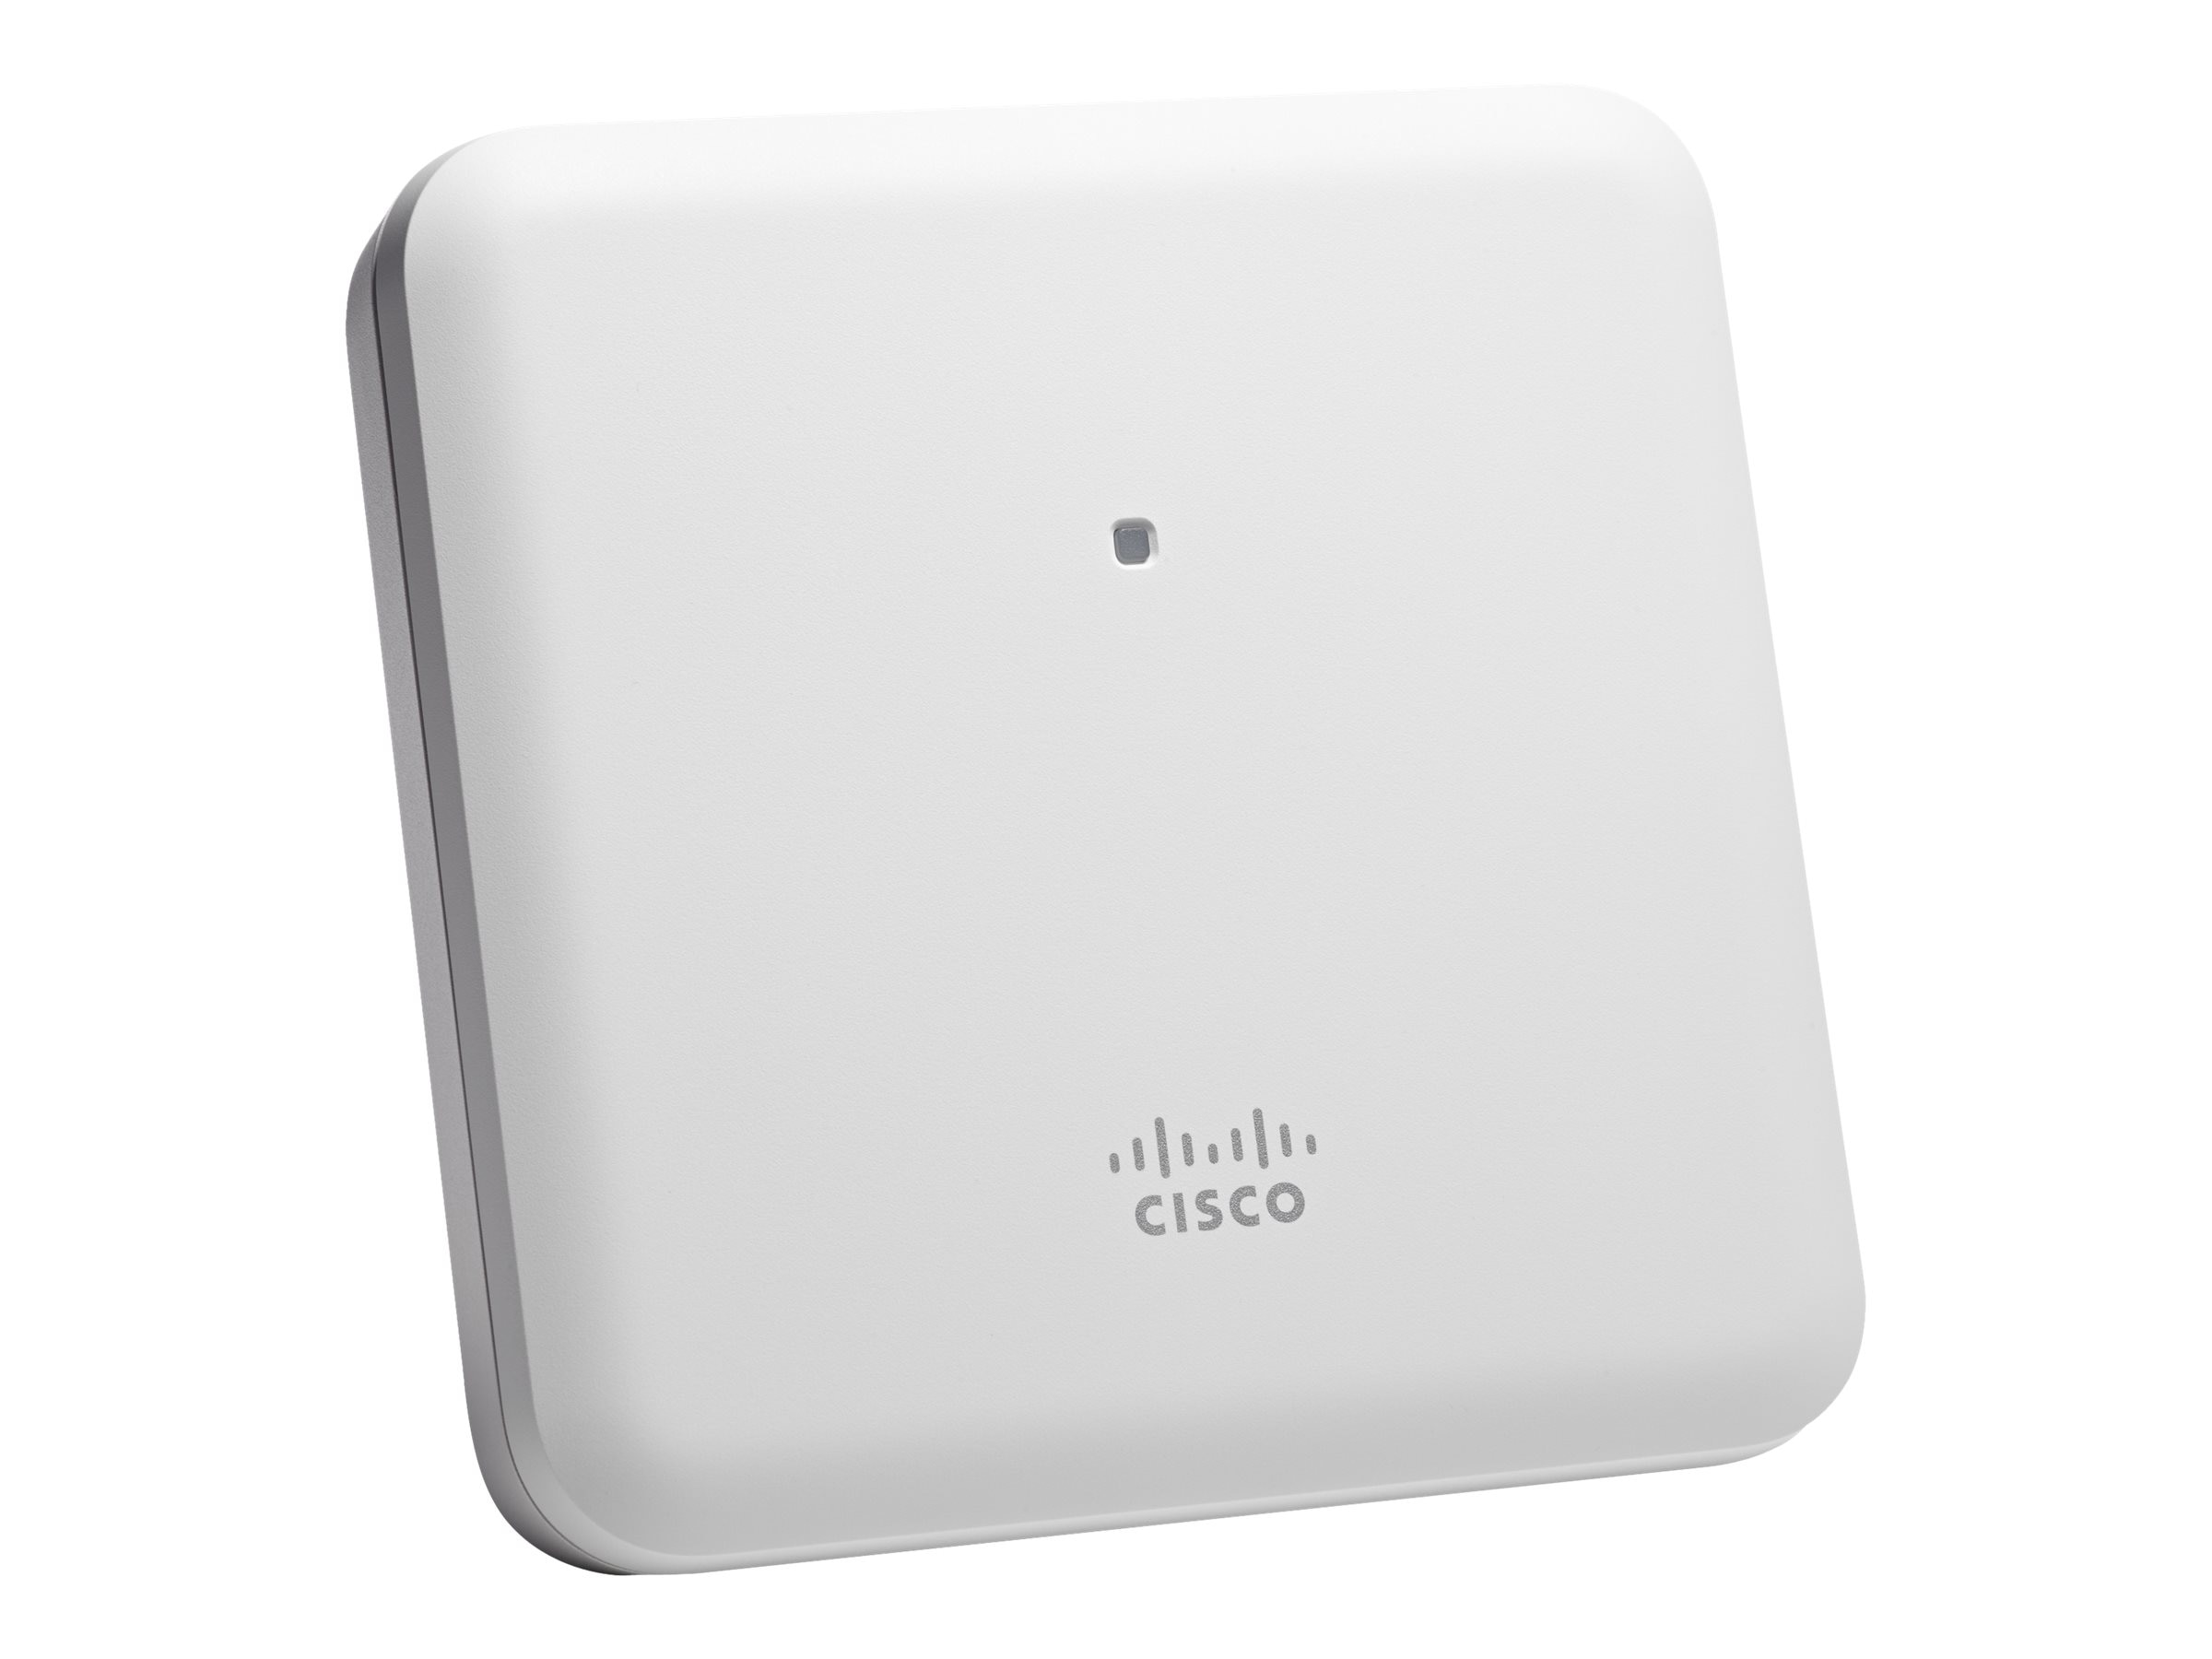 Cisco Aironet 1852i AP w 4x4:4SS, Int Ant, B Domain Configurable